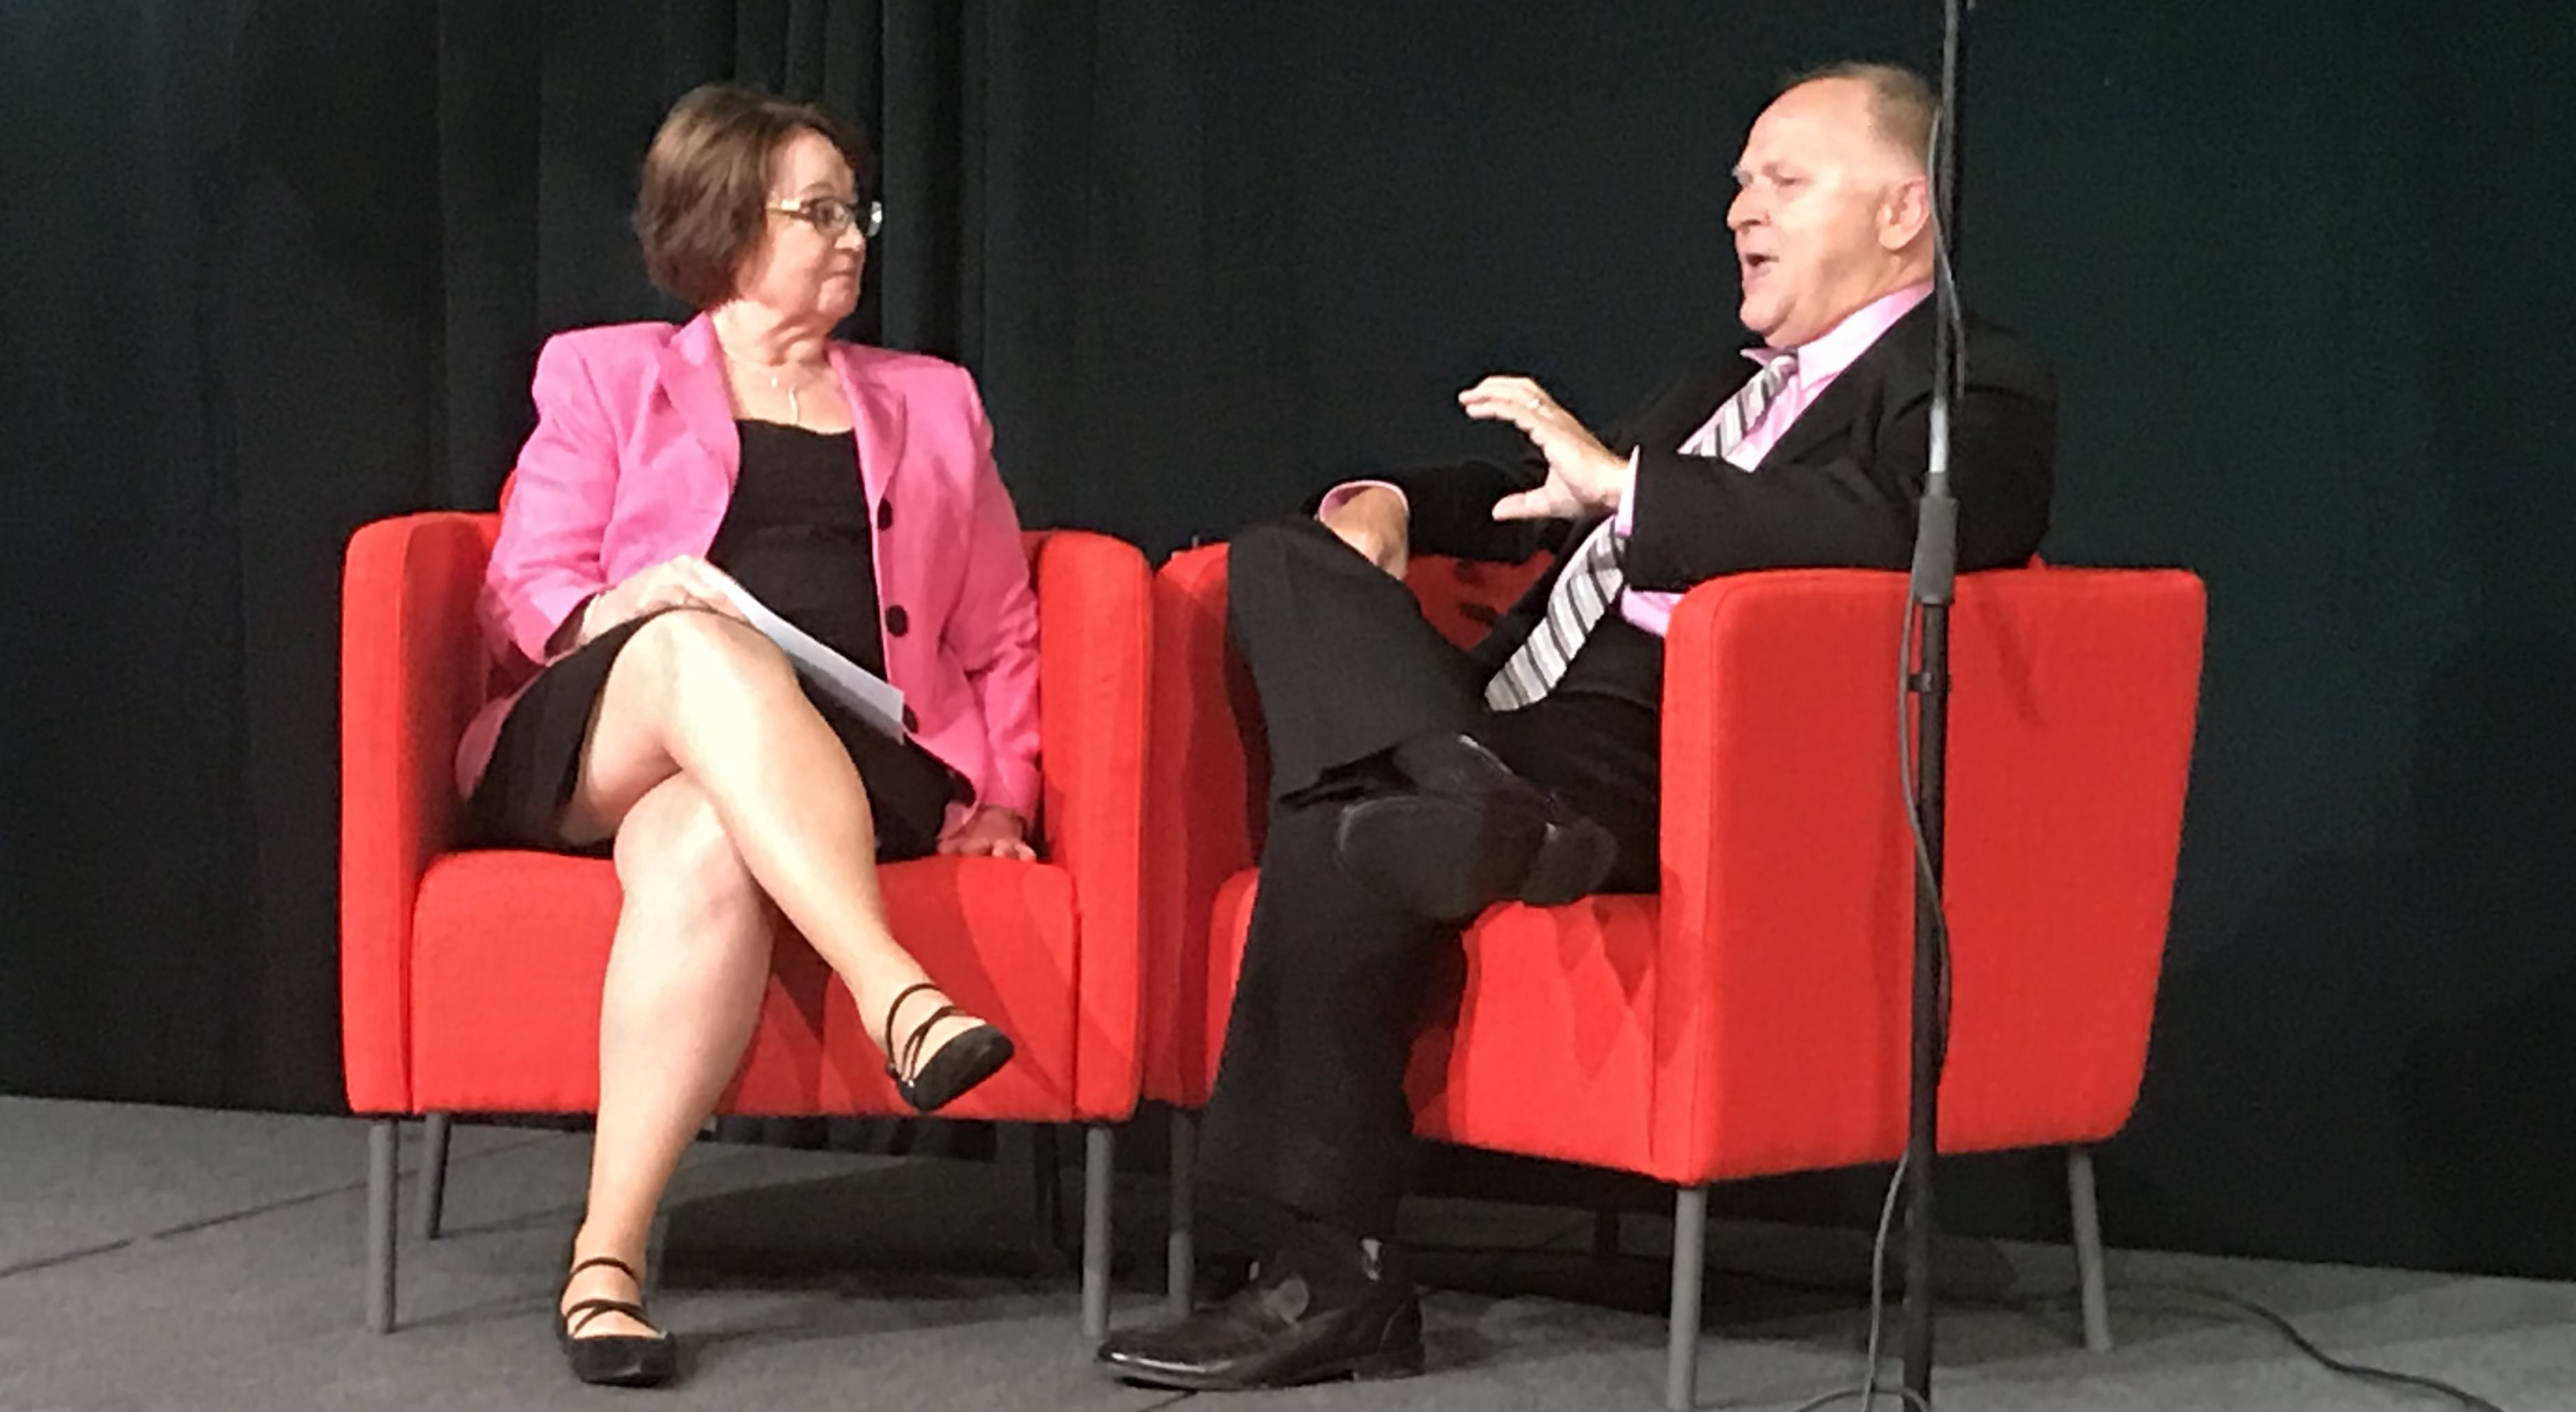 Sheryl Sommer interviews Phil Dickison, NCSBN, at the ATI National Nurse Educator Summit in April 2018 about Next Generation NCLEX.